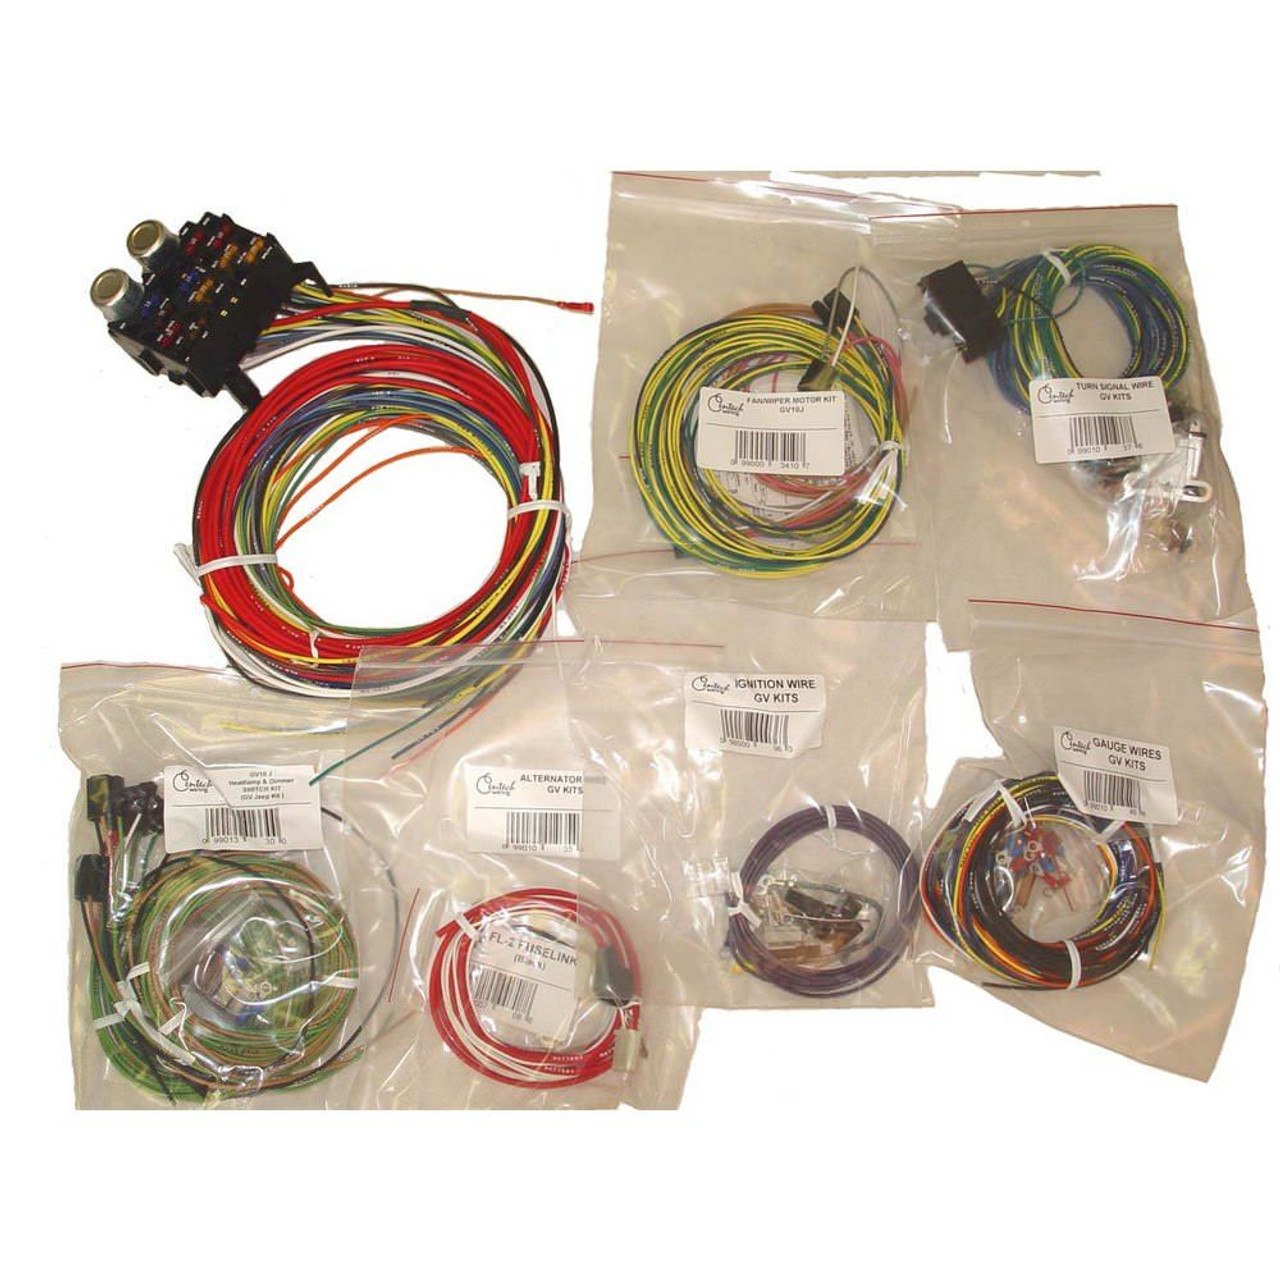 hight resolution of  17203 01 centech wiring harness 55 86 jeep cj